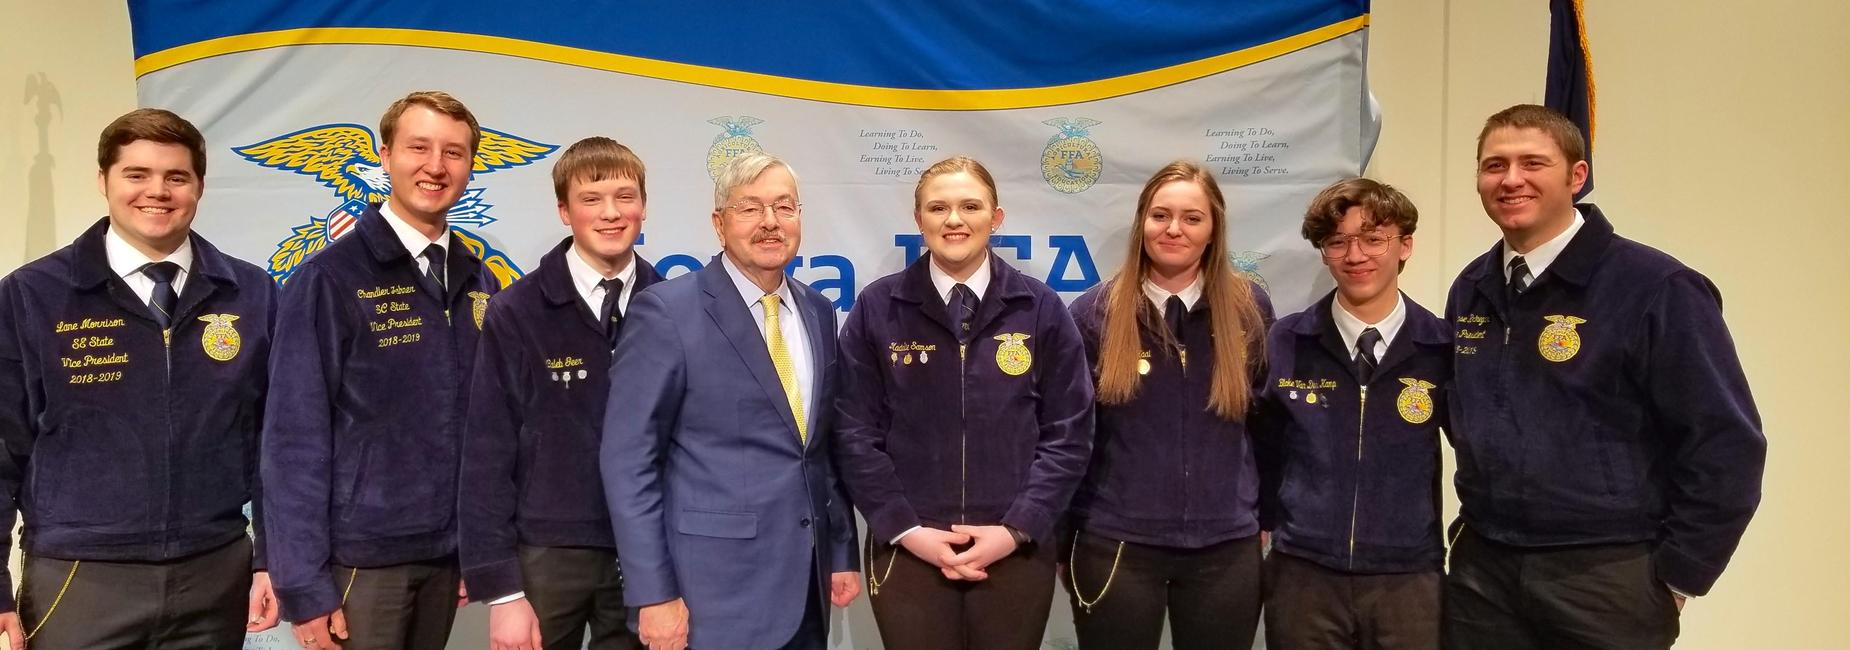 FFA award presented by governor